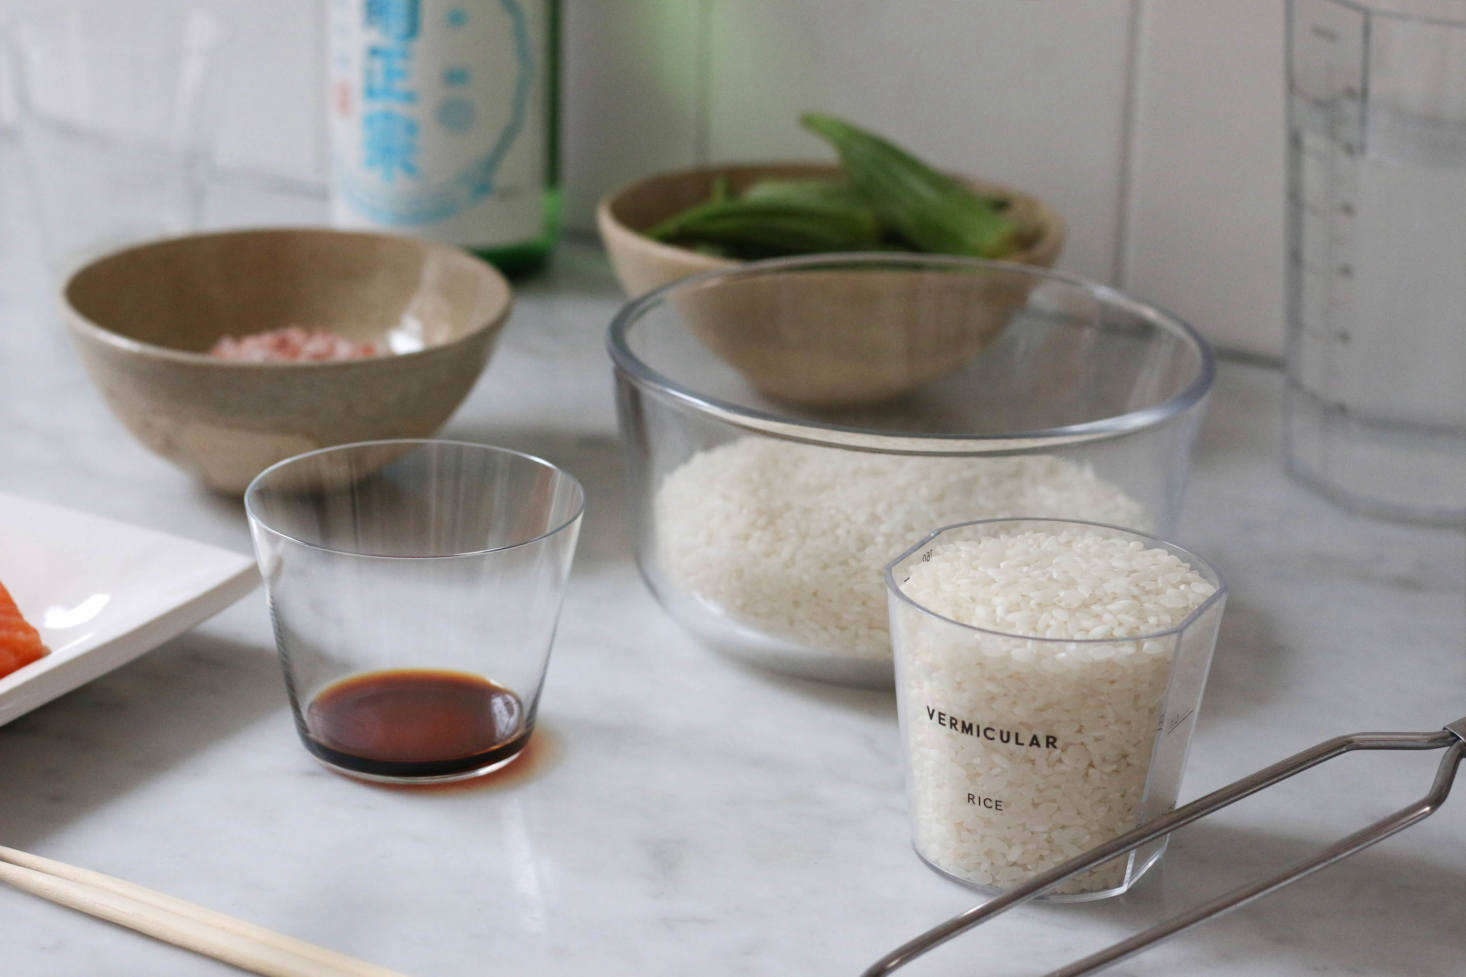 Rinsing the rice before cooking is key. Measure out 3 cups (540 ml) of plain white rice and rinse using a mesh strainer before adding to the pot; then add the 5ml of water.